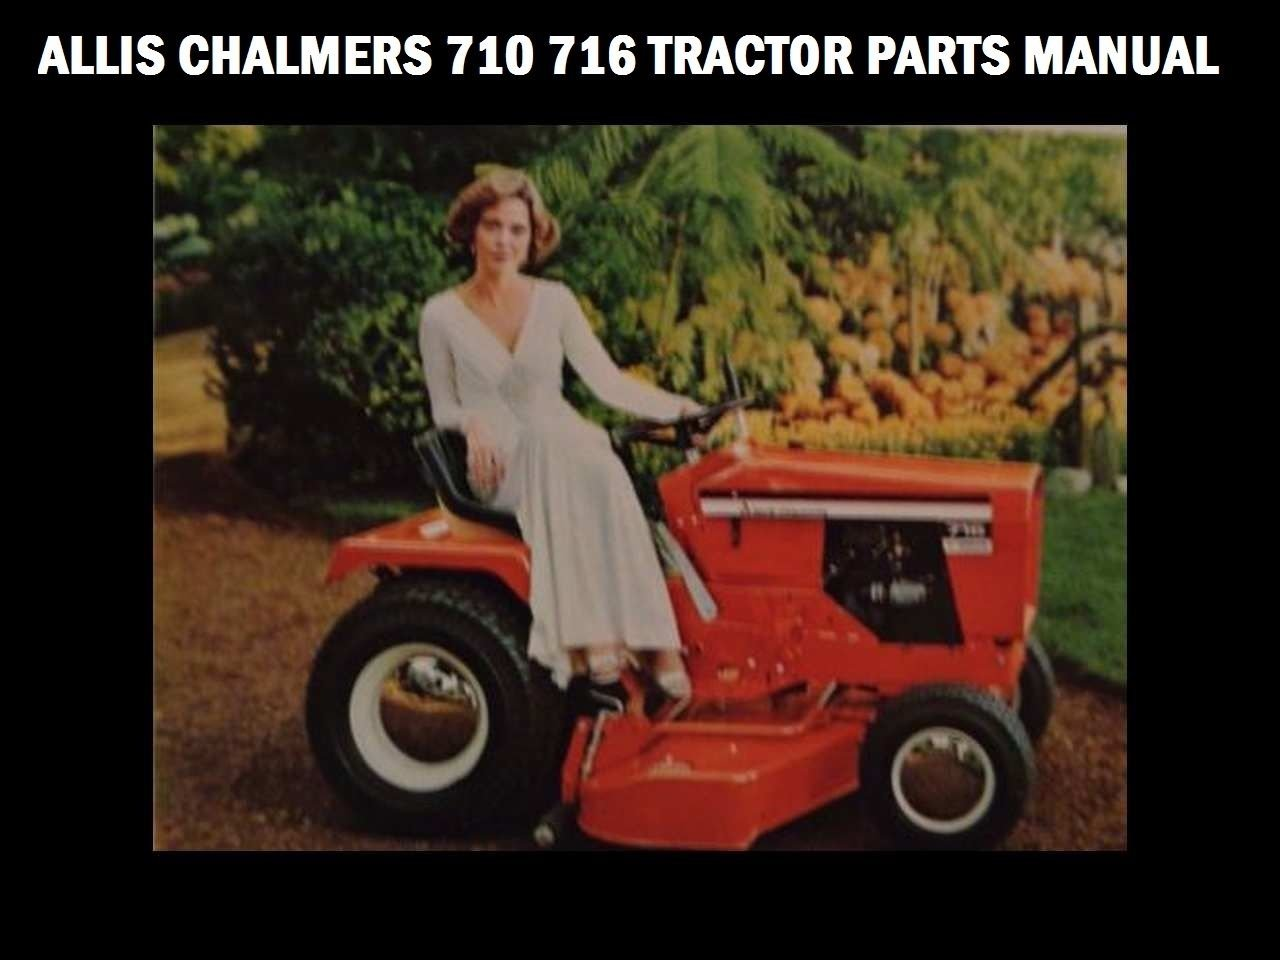 Allis Chalmers 710 716 Tractor Part Manual For 7010 7016 6 Speed Garden Tractors